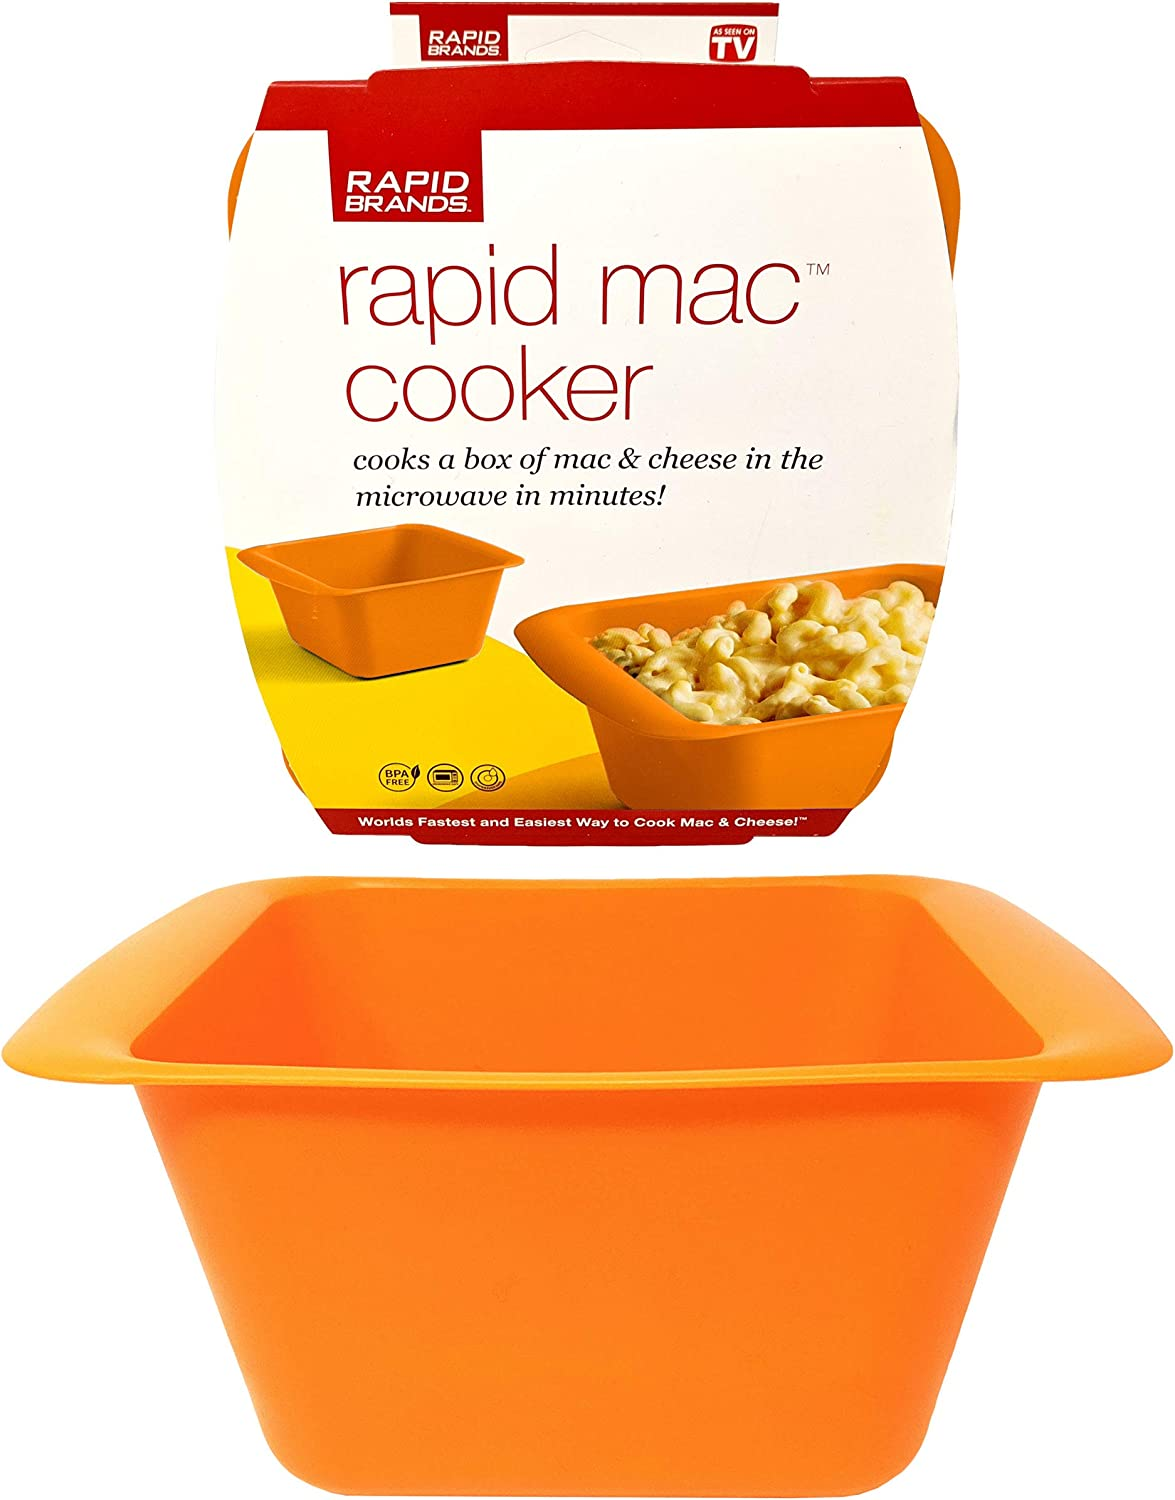 Rapid Mac Cooker | Microwave Macaroni & Cheese in 5 Minutes | Perfect for Dorm, Small Kitchen, or Office | Dishwasher-Safe, Microwaveable, & BPA-Free (Orange)